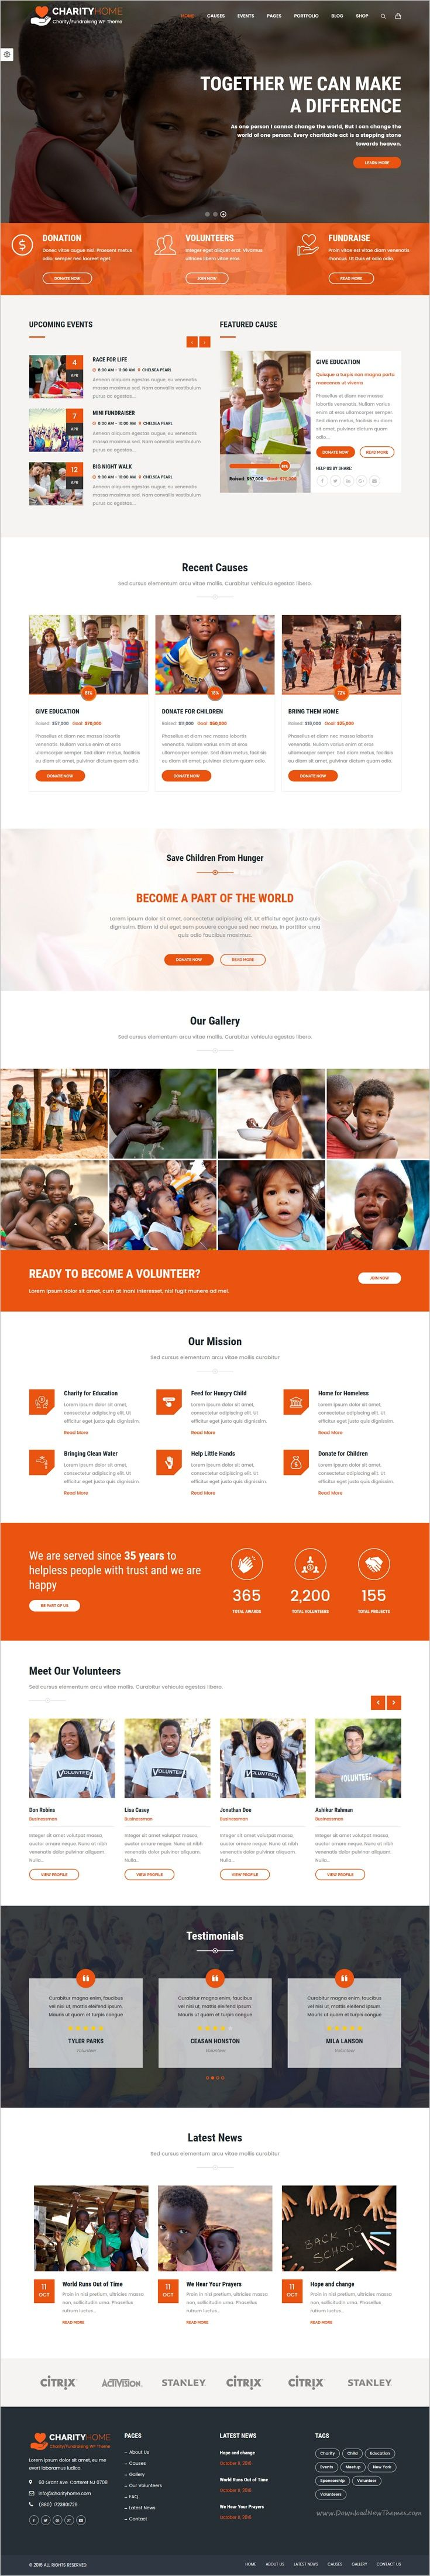 Charity Home is a wonderful responsive #WordPress theme for #Charity, #Nonprofit, One Cause, Environment, #Fundraising, Politics, NGO, Church and other non-profit projects website download now➩ https://themeforest.net/item/charity-home-charityfundraising-wordpress-theme/18502639?ref=Datasata